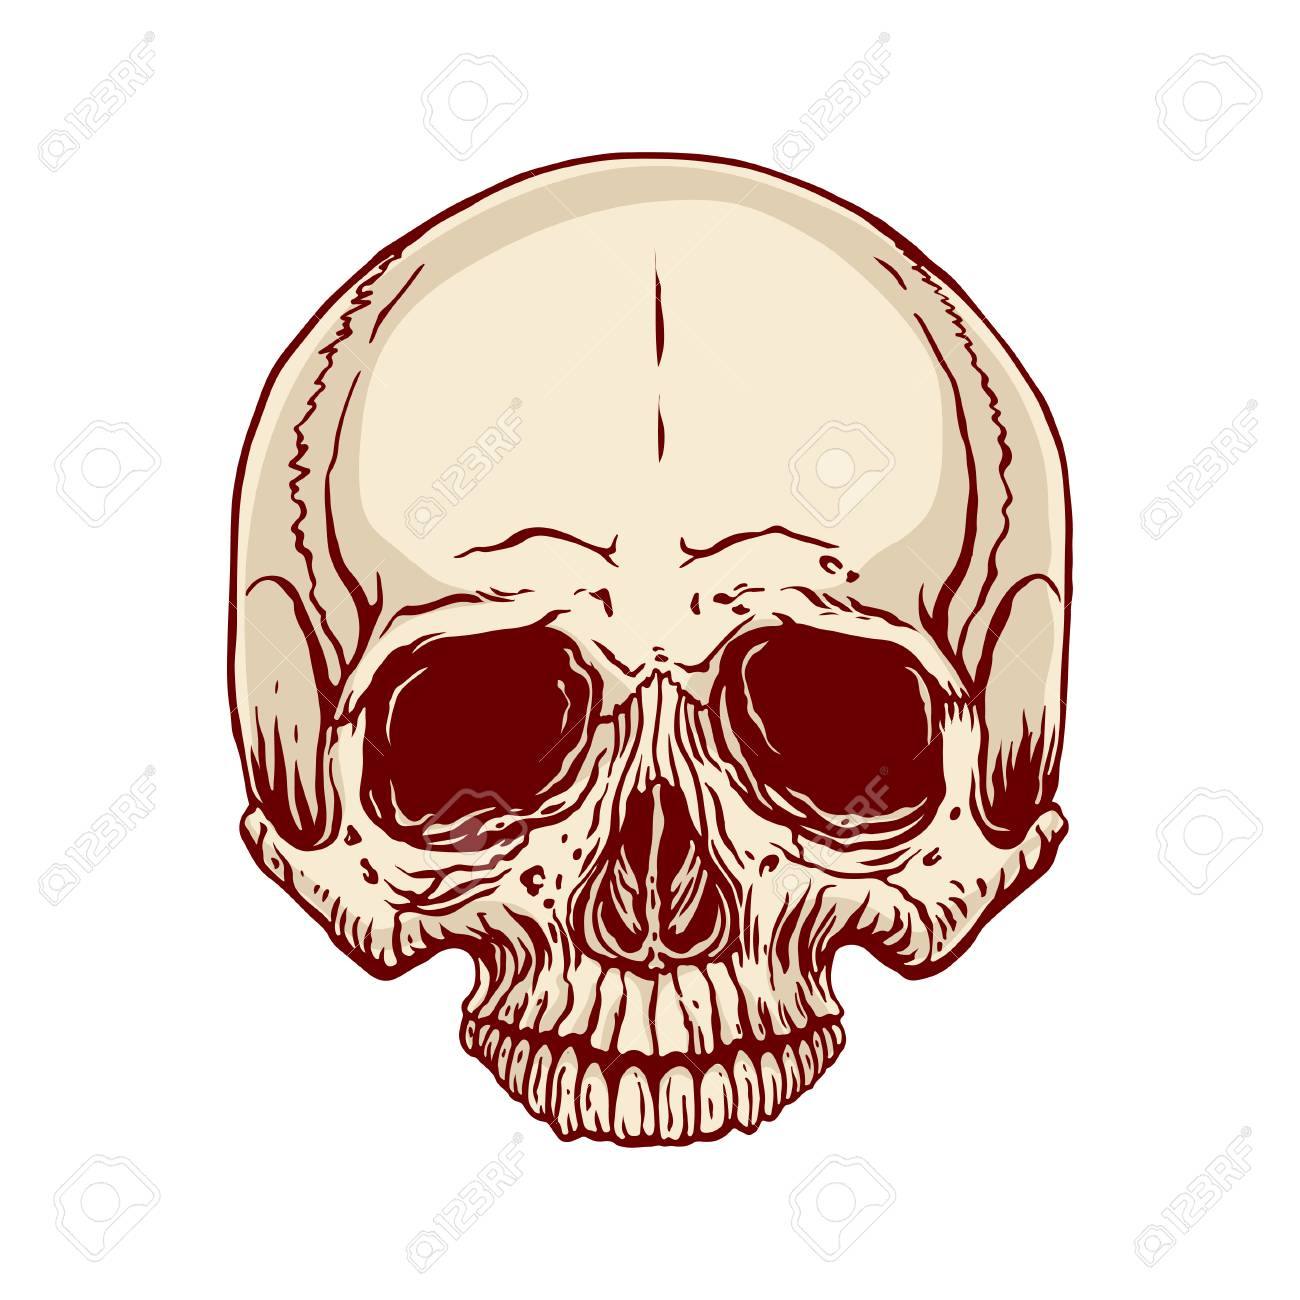 Hand Drawn Illustration Of Anatomy Human Skull Without A Lower